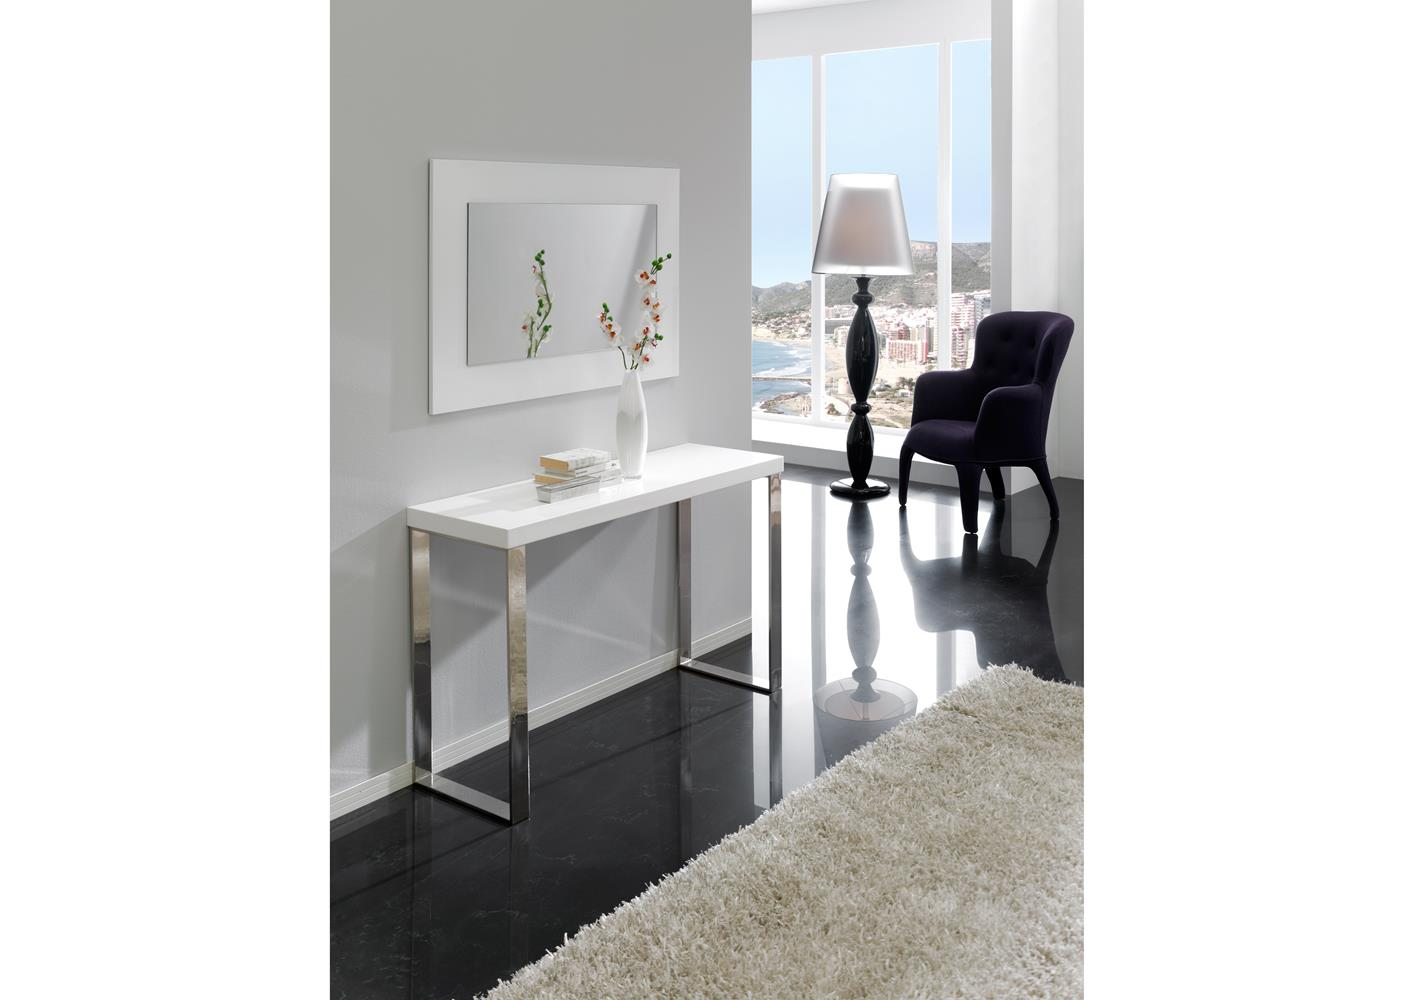 acheter votre console contemporaine en verre chez simeuble. Black Bedroom Furniture Sets. Home Design Ideas